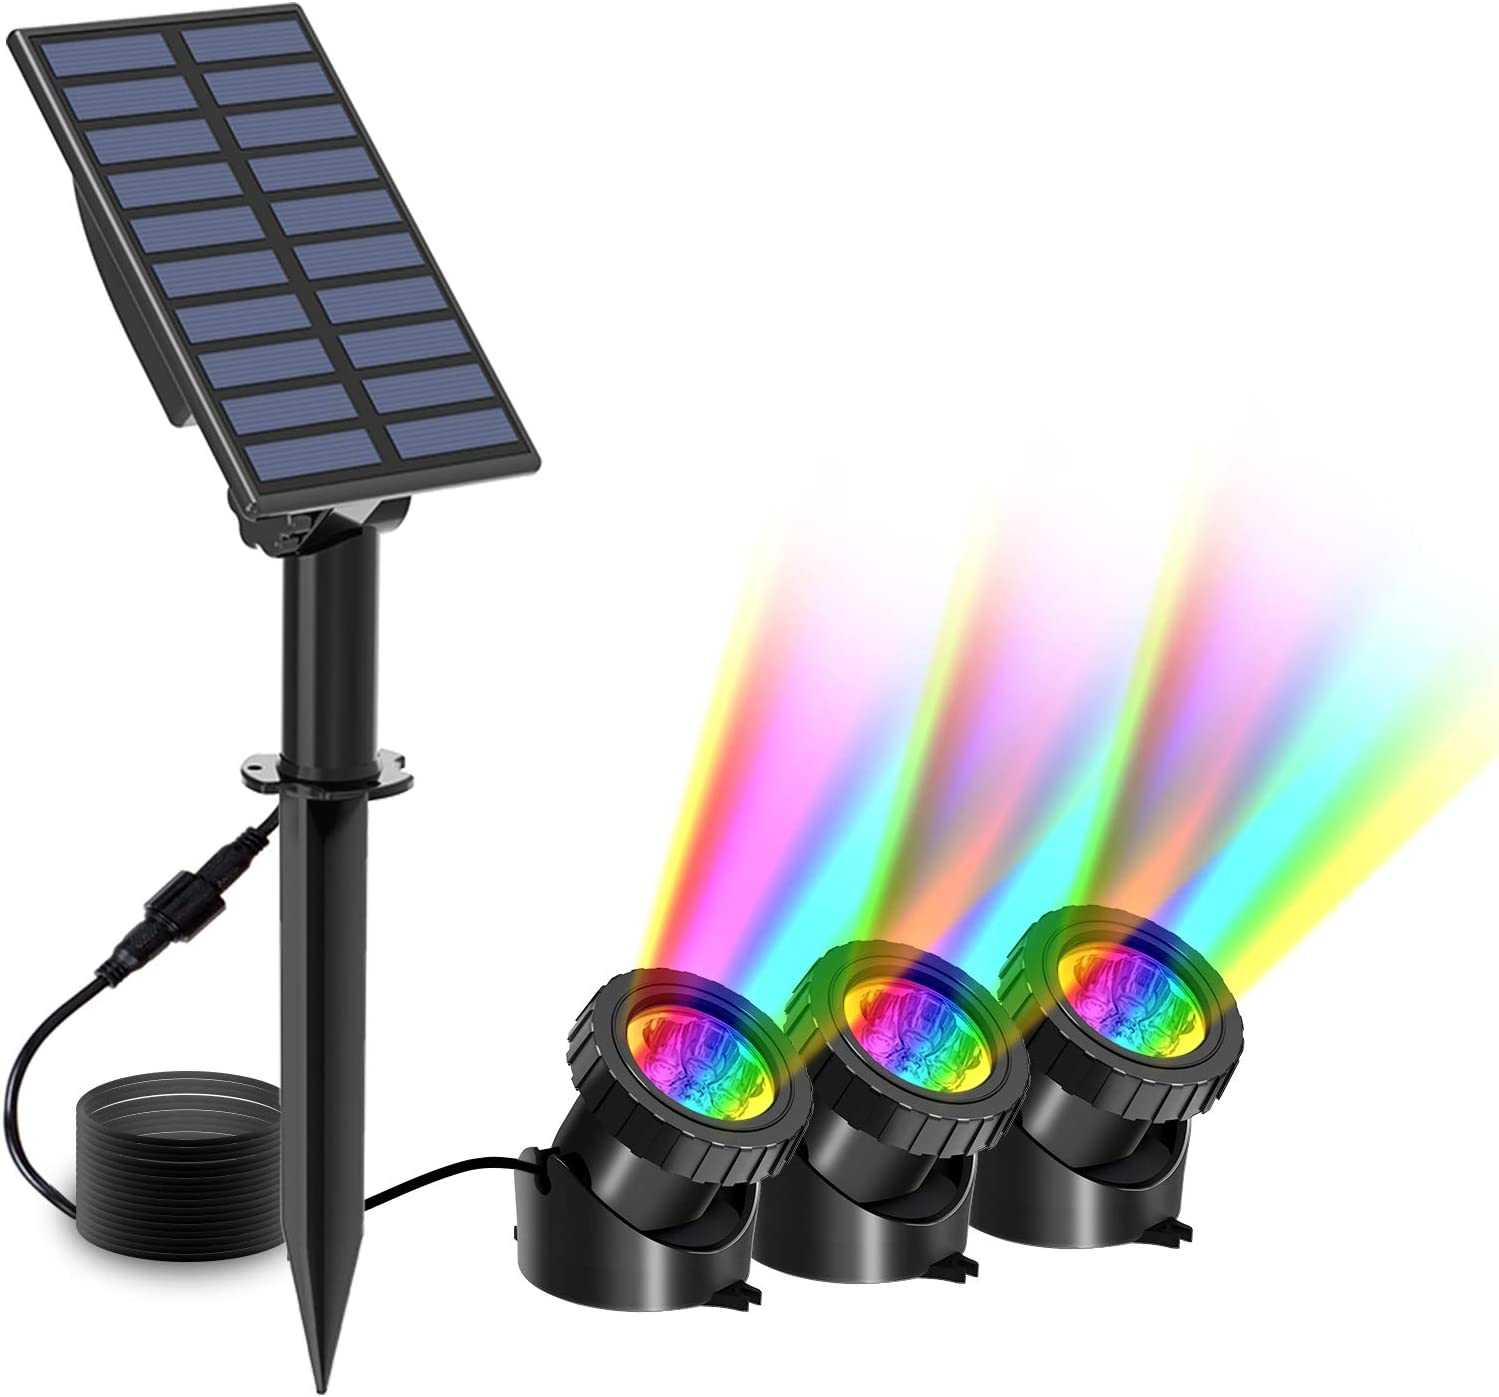 T-SUN Solar Pond Lights 3 in Underwater Popular product Changing RGB 1 Color Po Indefinitely